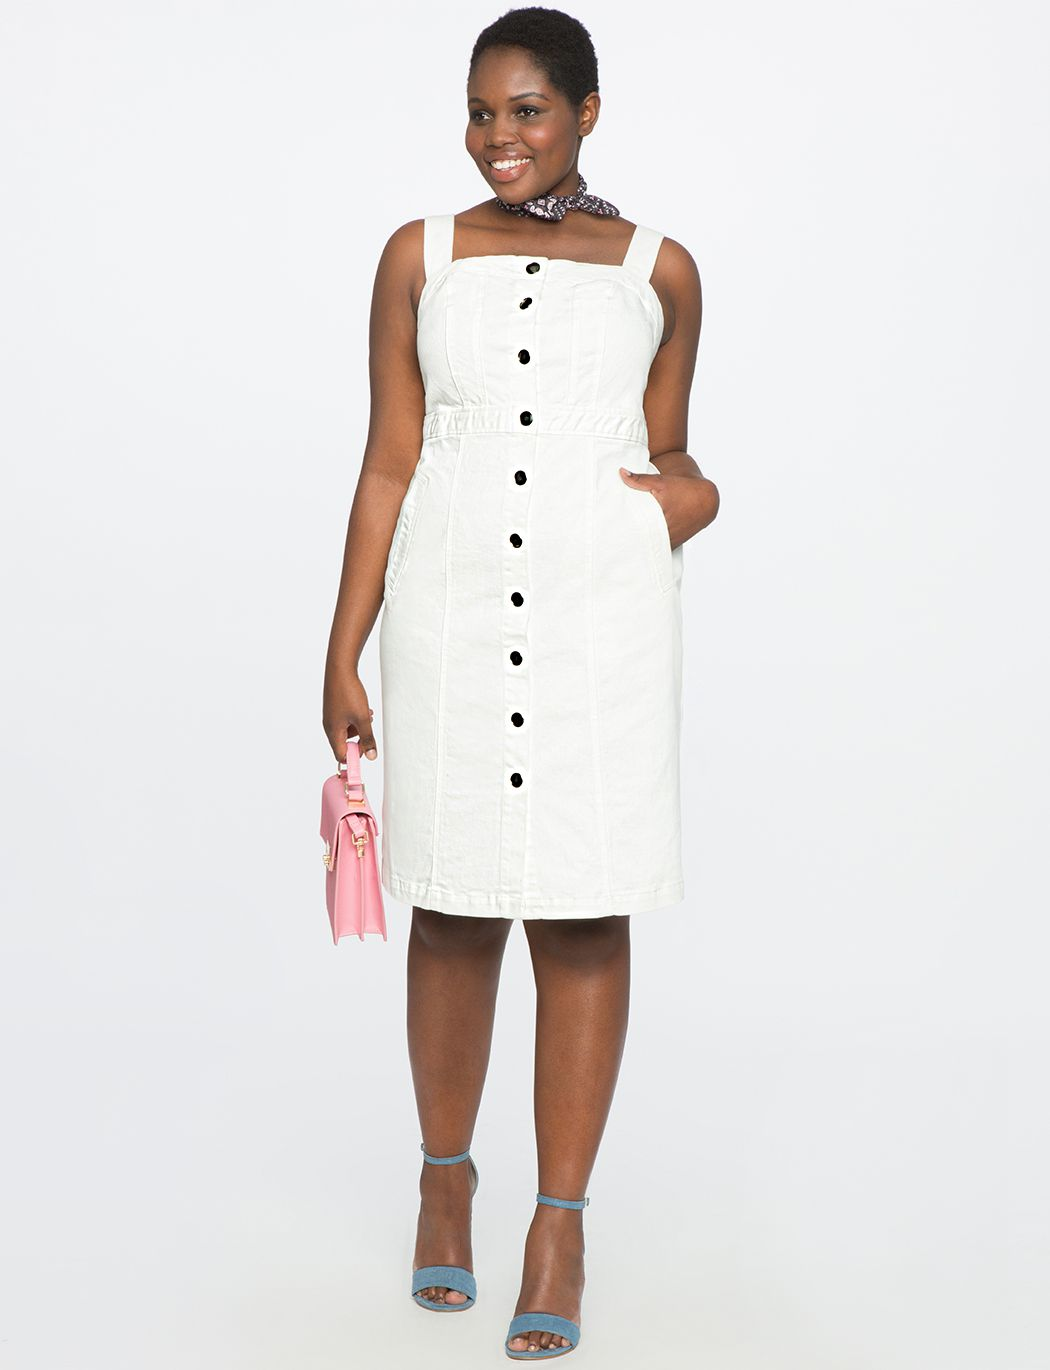 A model in a white button down dress